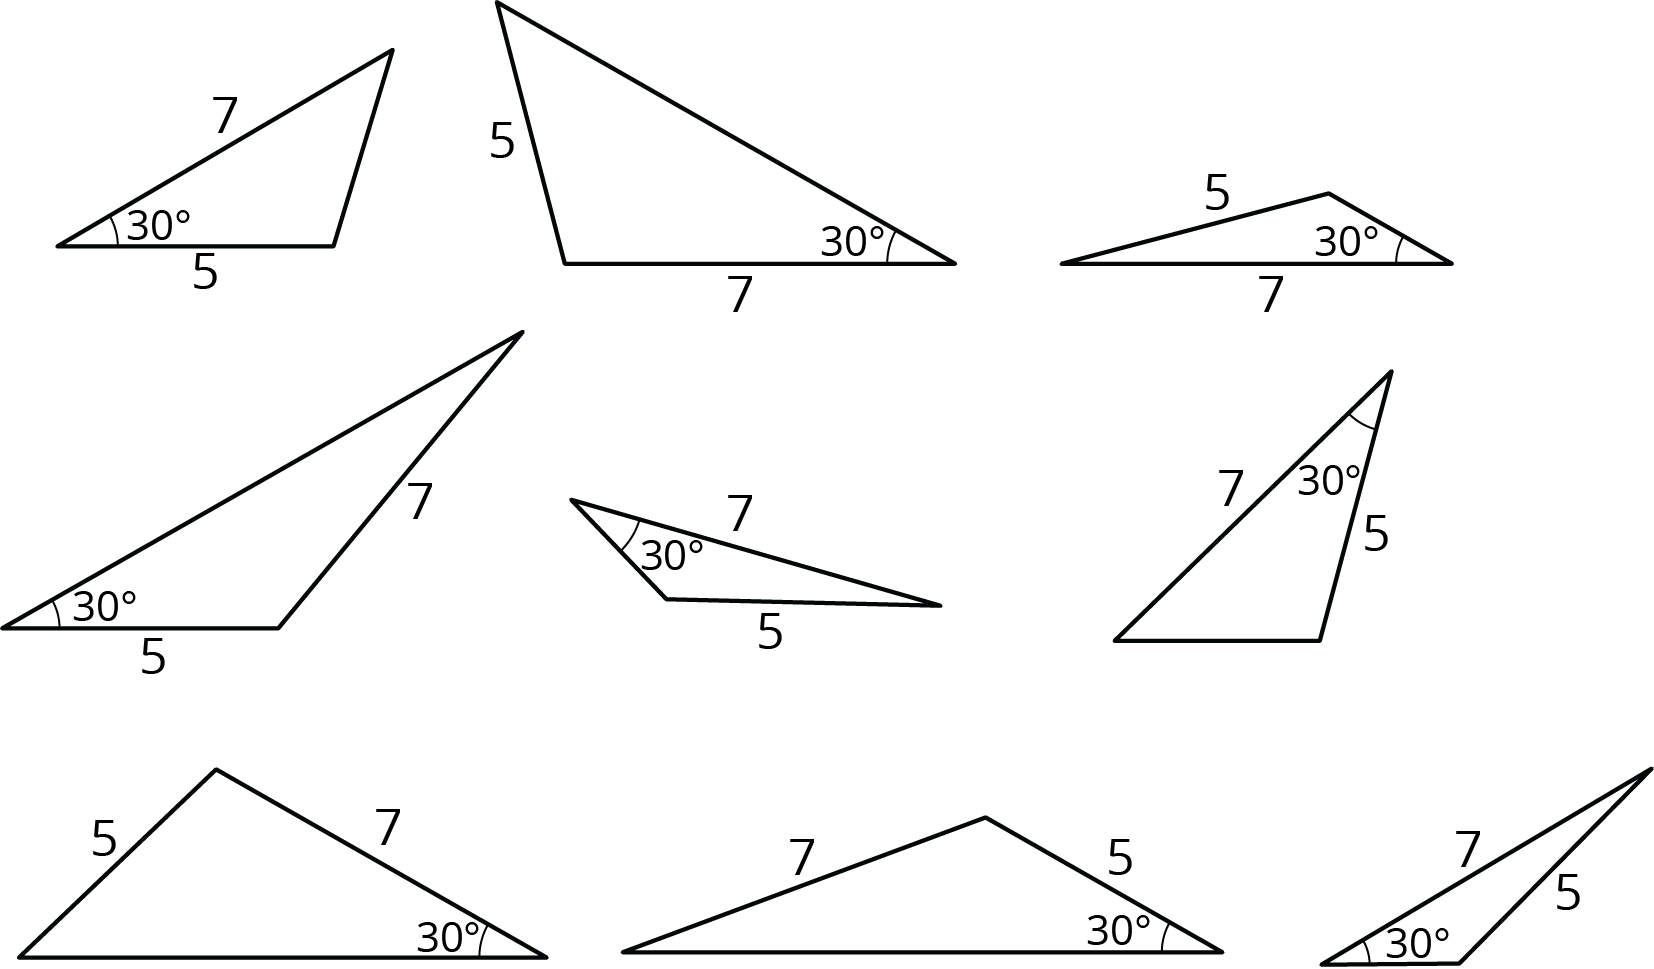 hight resolution of Fishtank Learning - 7th Grade - Unit 6: Geometry - Lesson 14